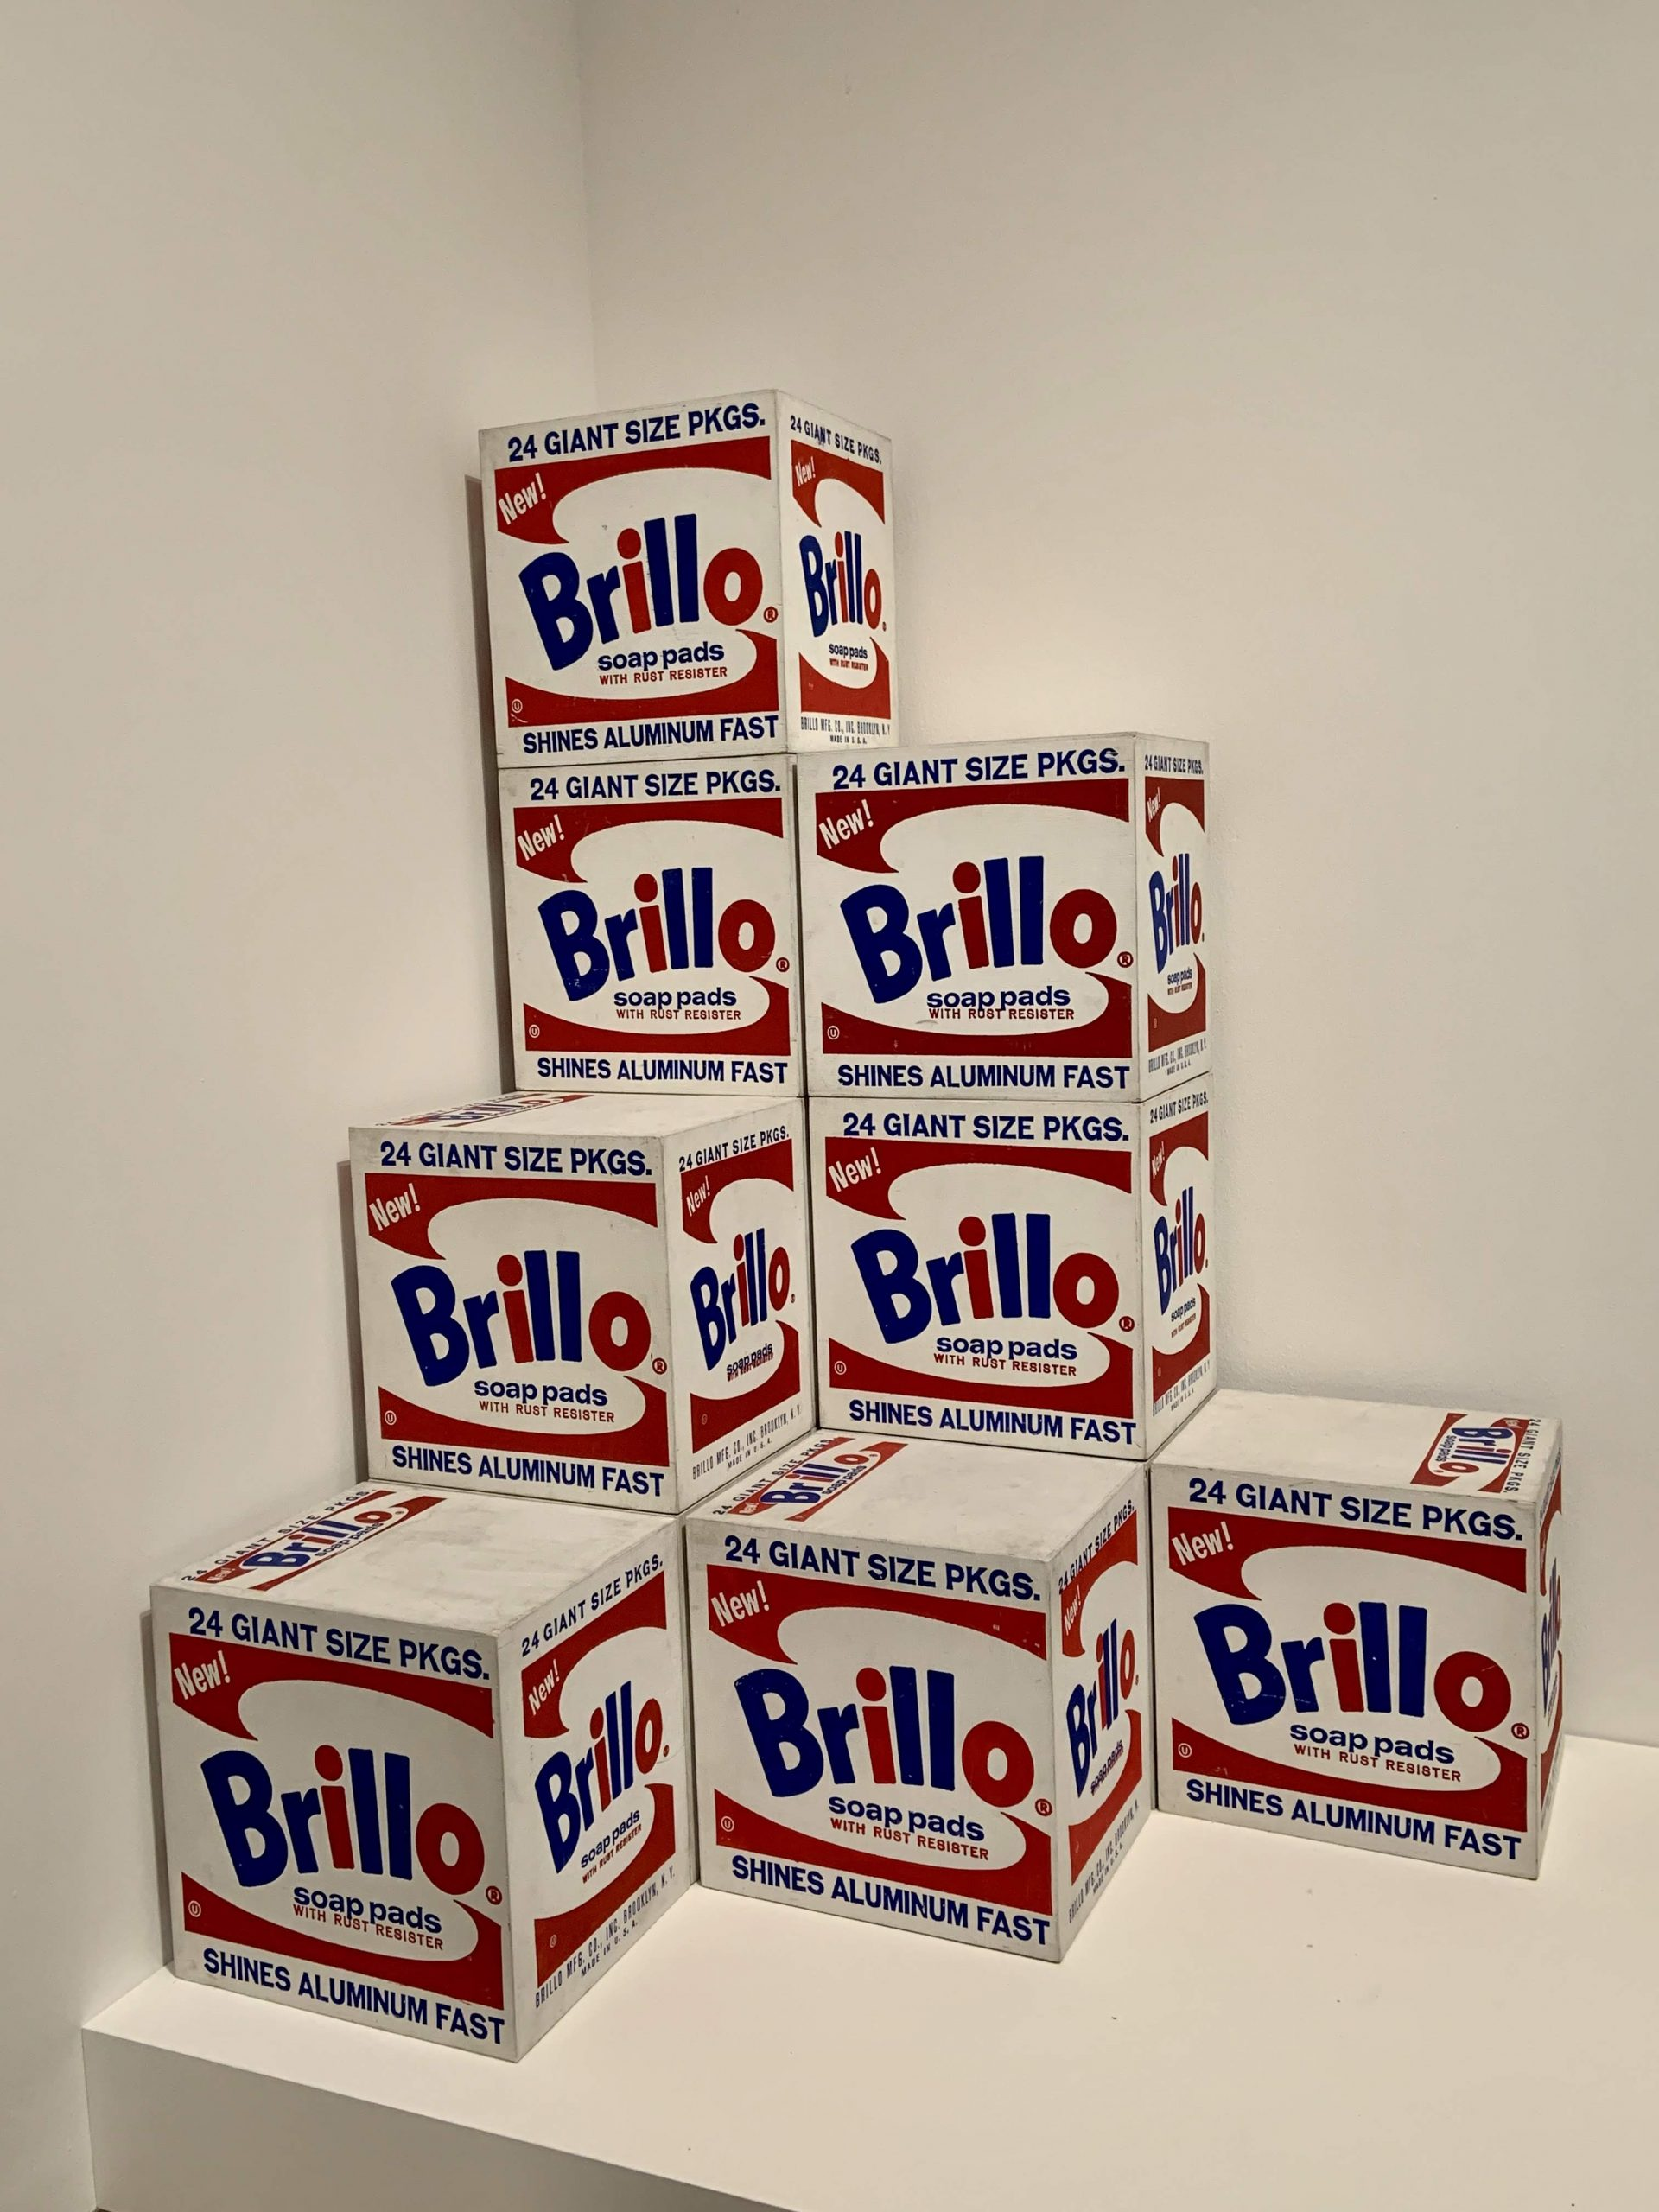 Andy Warhol - Brillo Box (Soap Pads) 1964